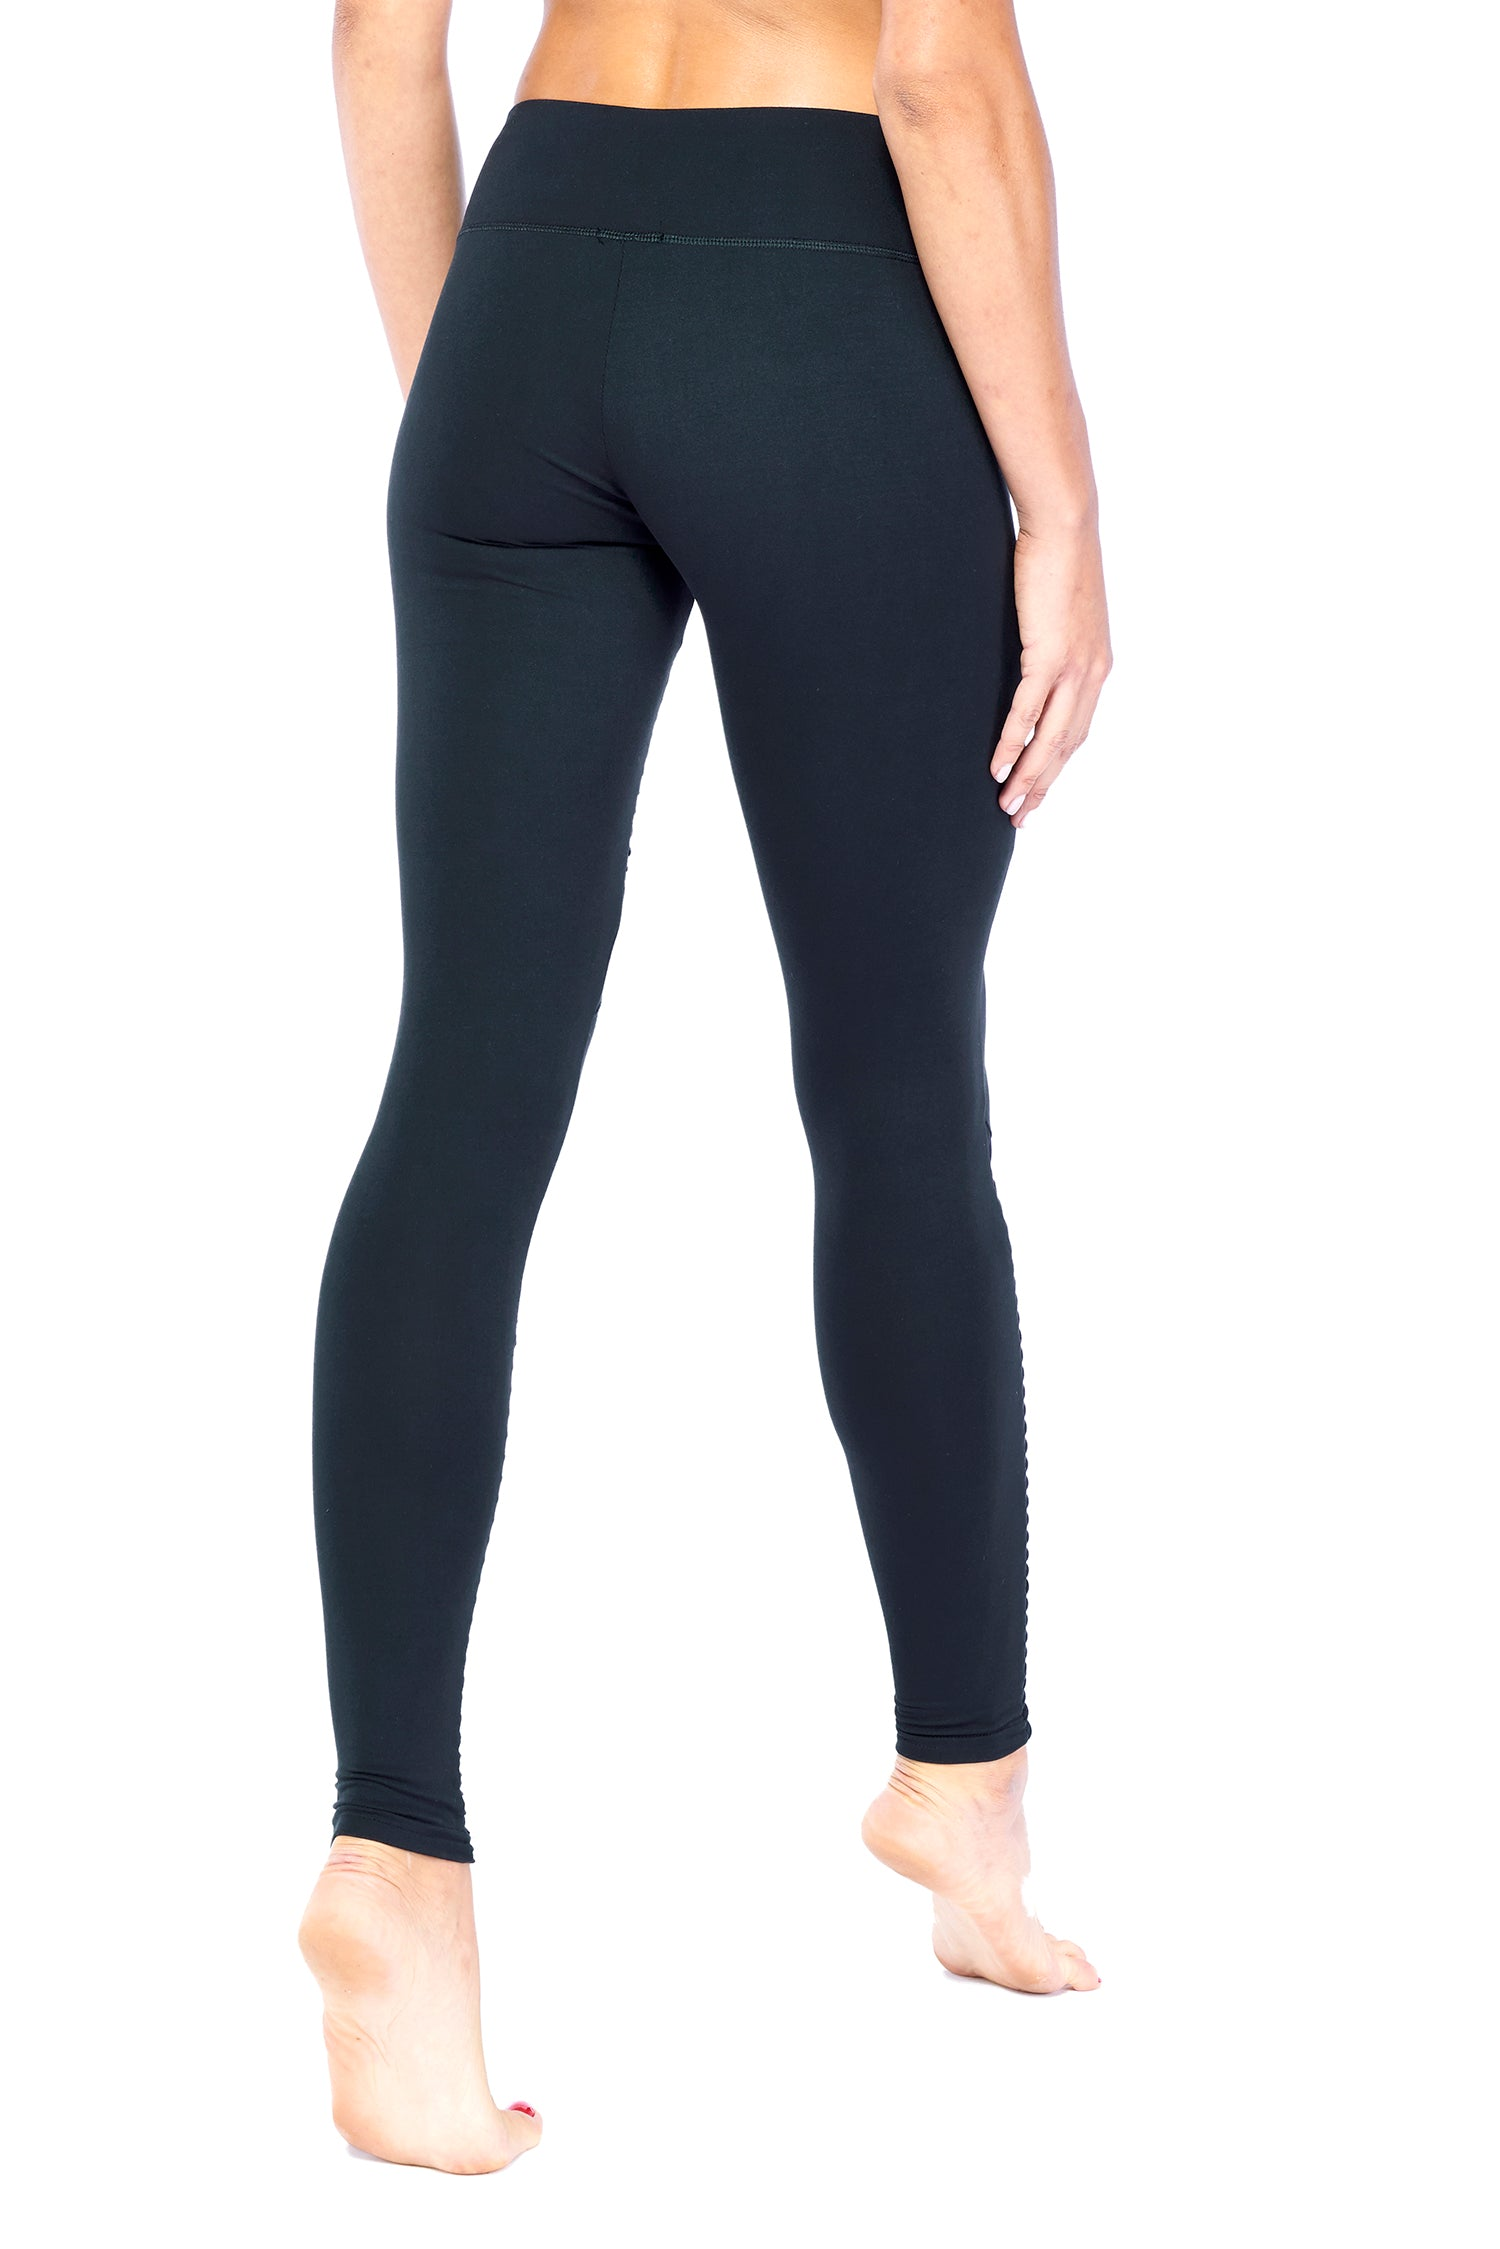 Blend In Zen Wanted Legging-Black